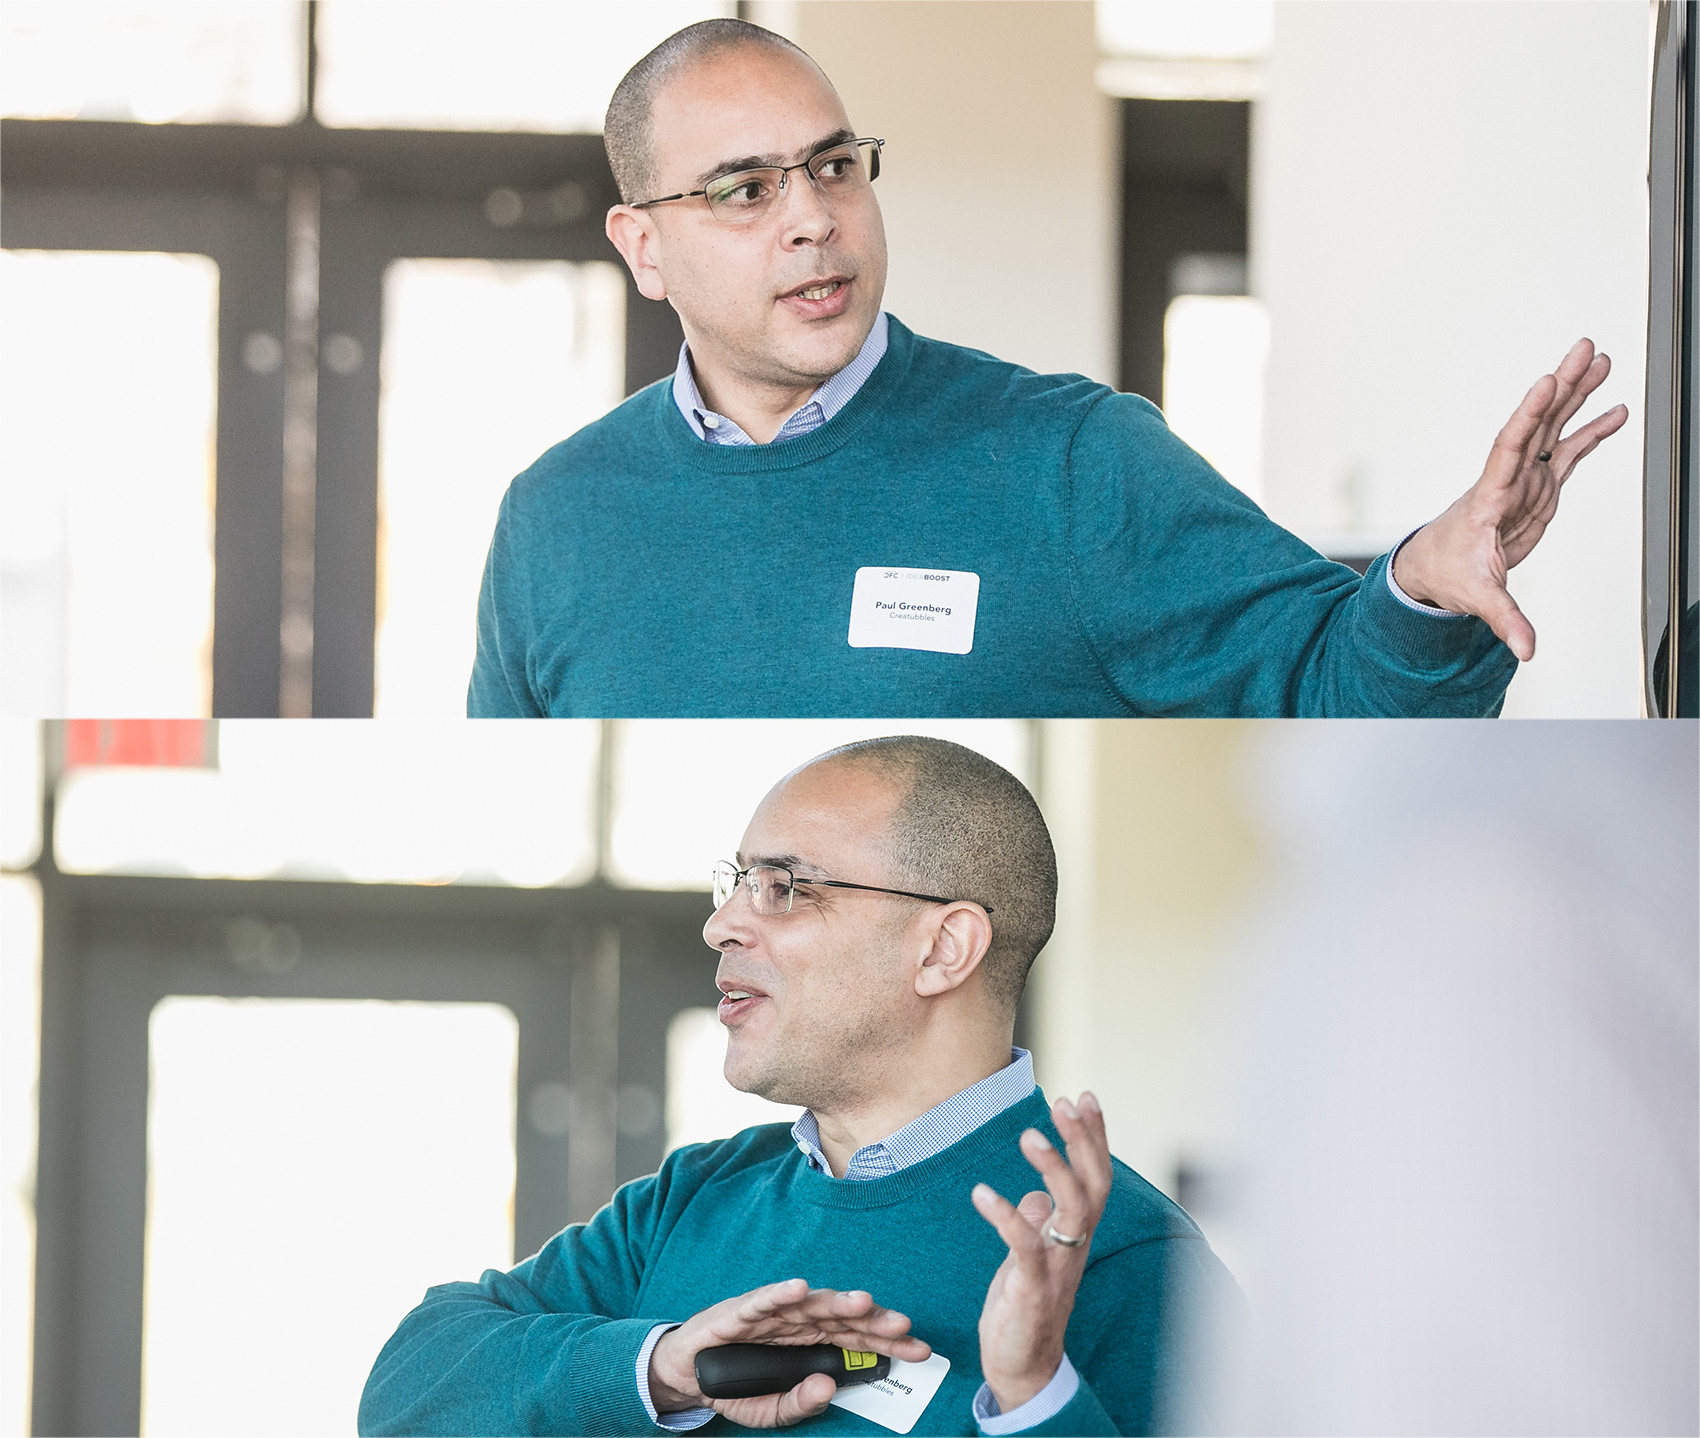 Two shots of the same man, speaking and pointing to a screen, part of his presentation.